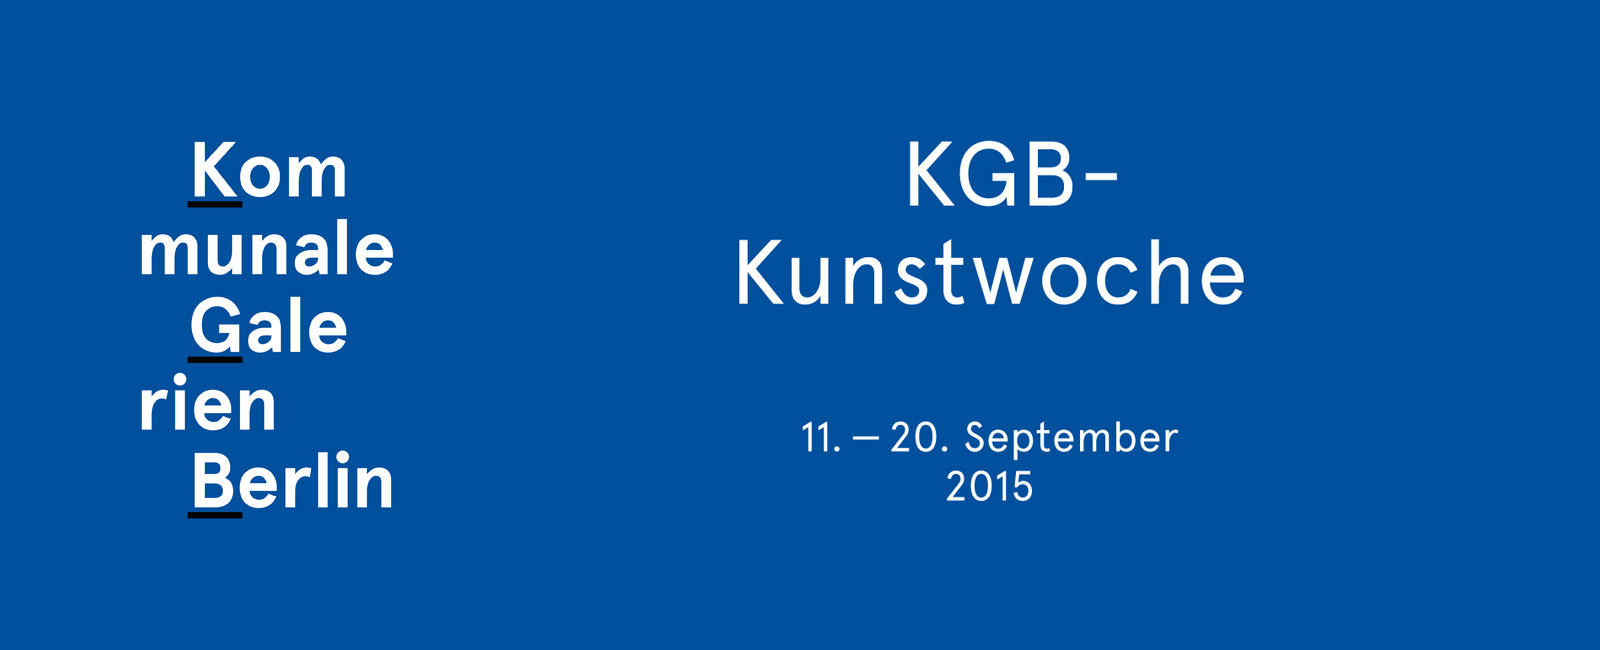 KGB-KUNSTWOCHE | Aktionswoche Zur Berlin Art Week 2015 | 11. – 20. September 2015